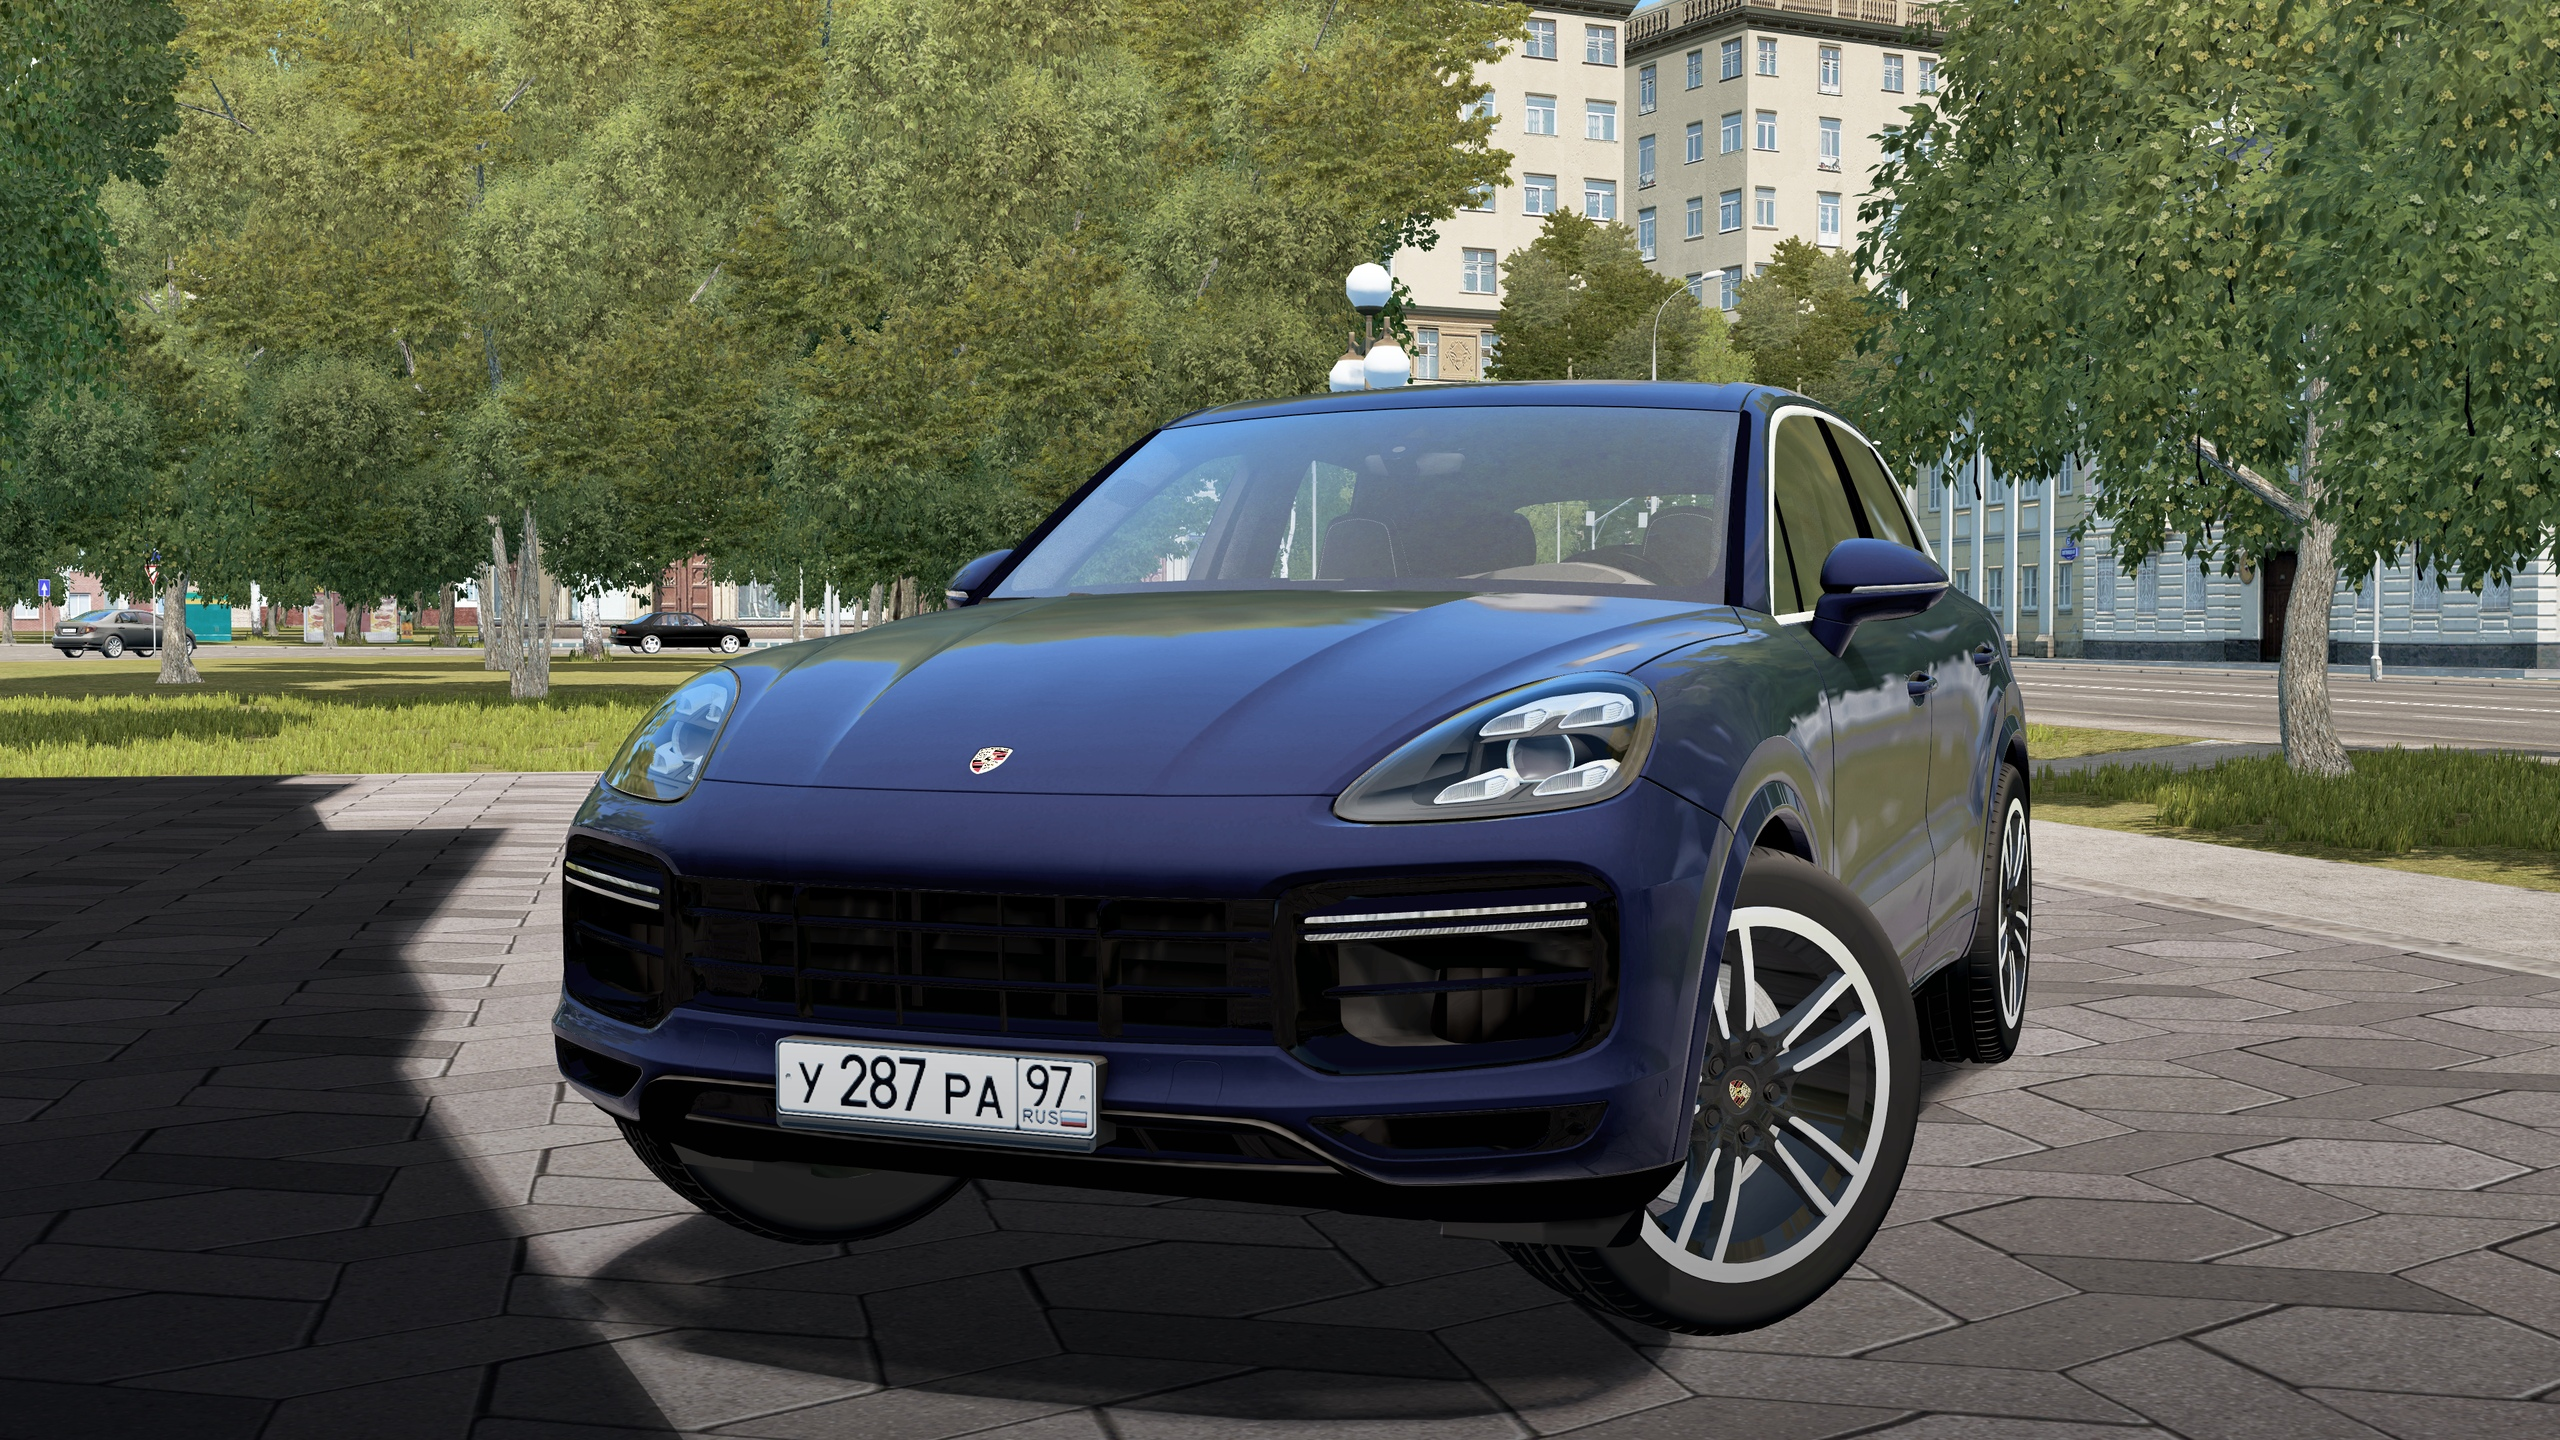 City Car Driving 1.5.8 - Porsche Cayenne Turbo 2019